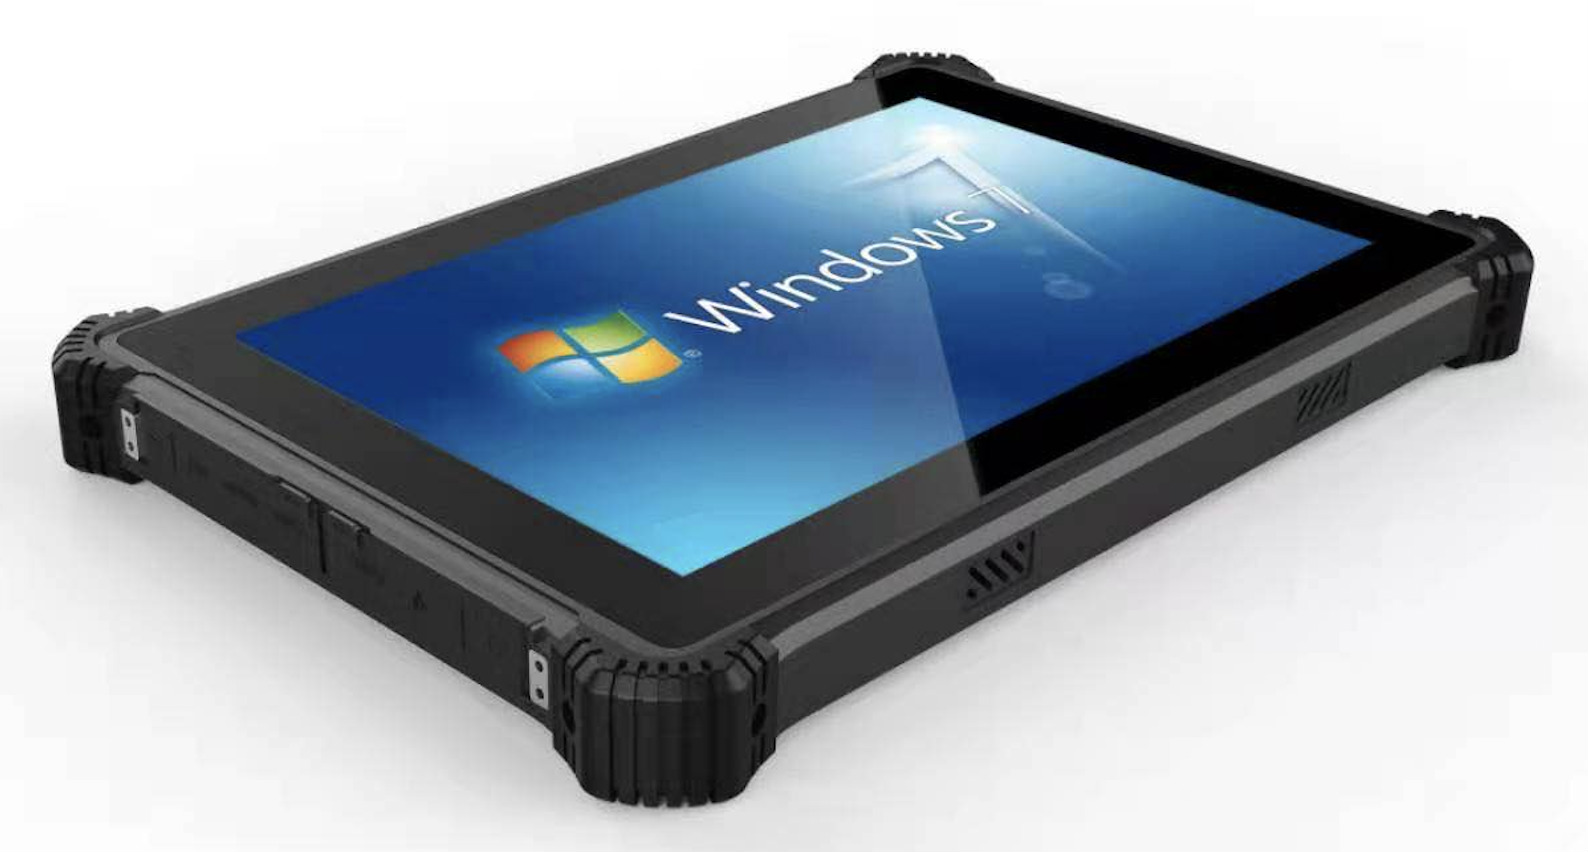 Rugged Tablet T1002 with amazing storage